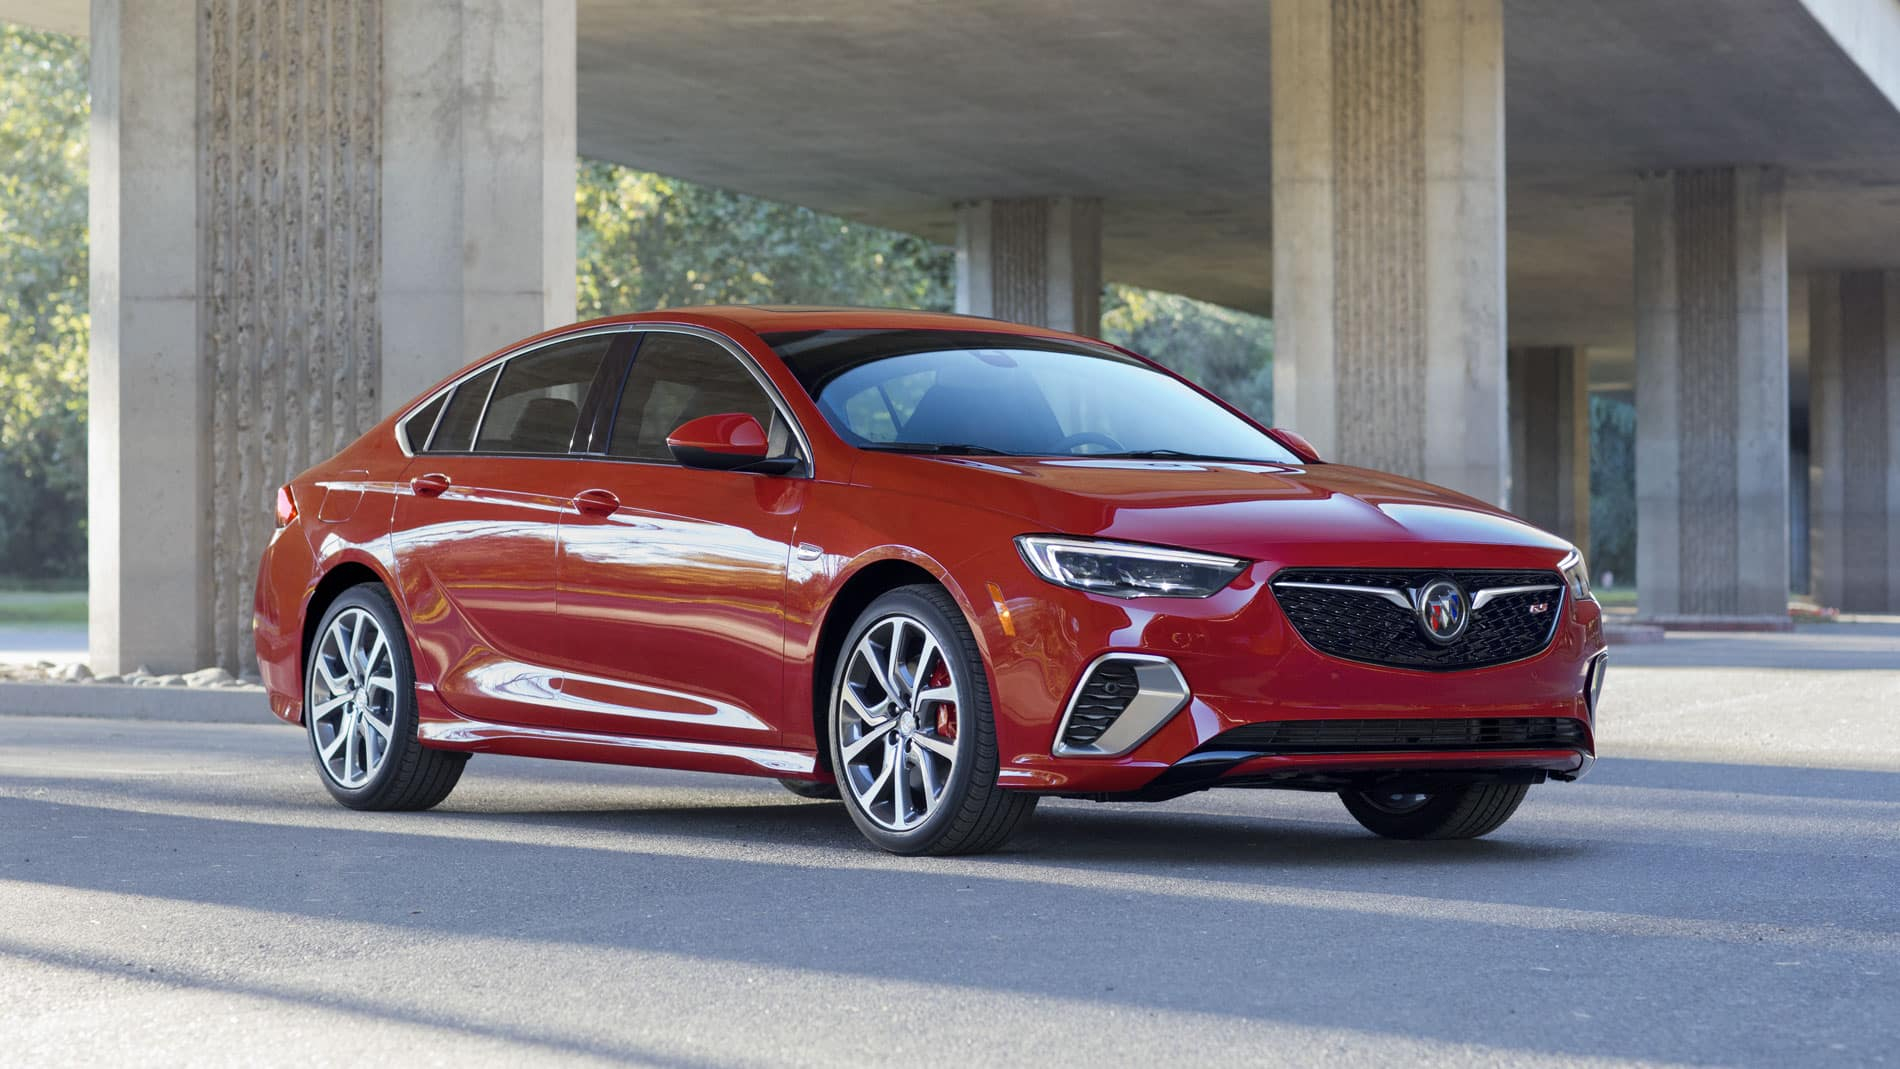 Https://www.garberautomall/new-Vehicles/buick/regal 2021 Buick Regal Gs Price, Review, 0-60